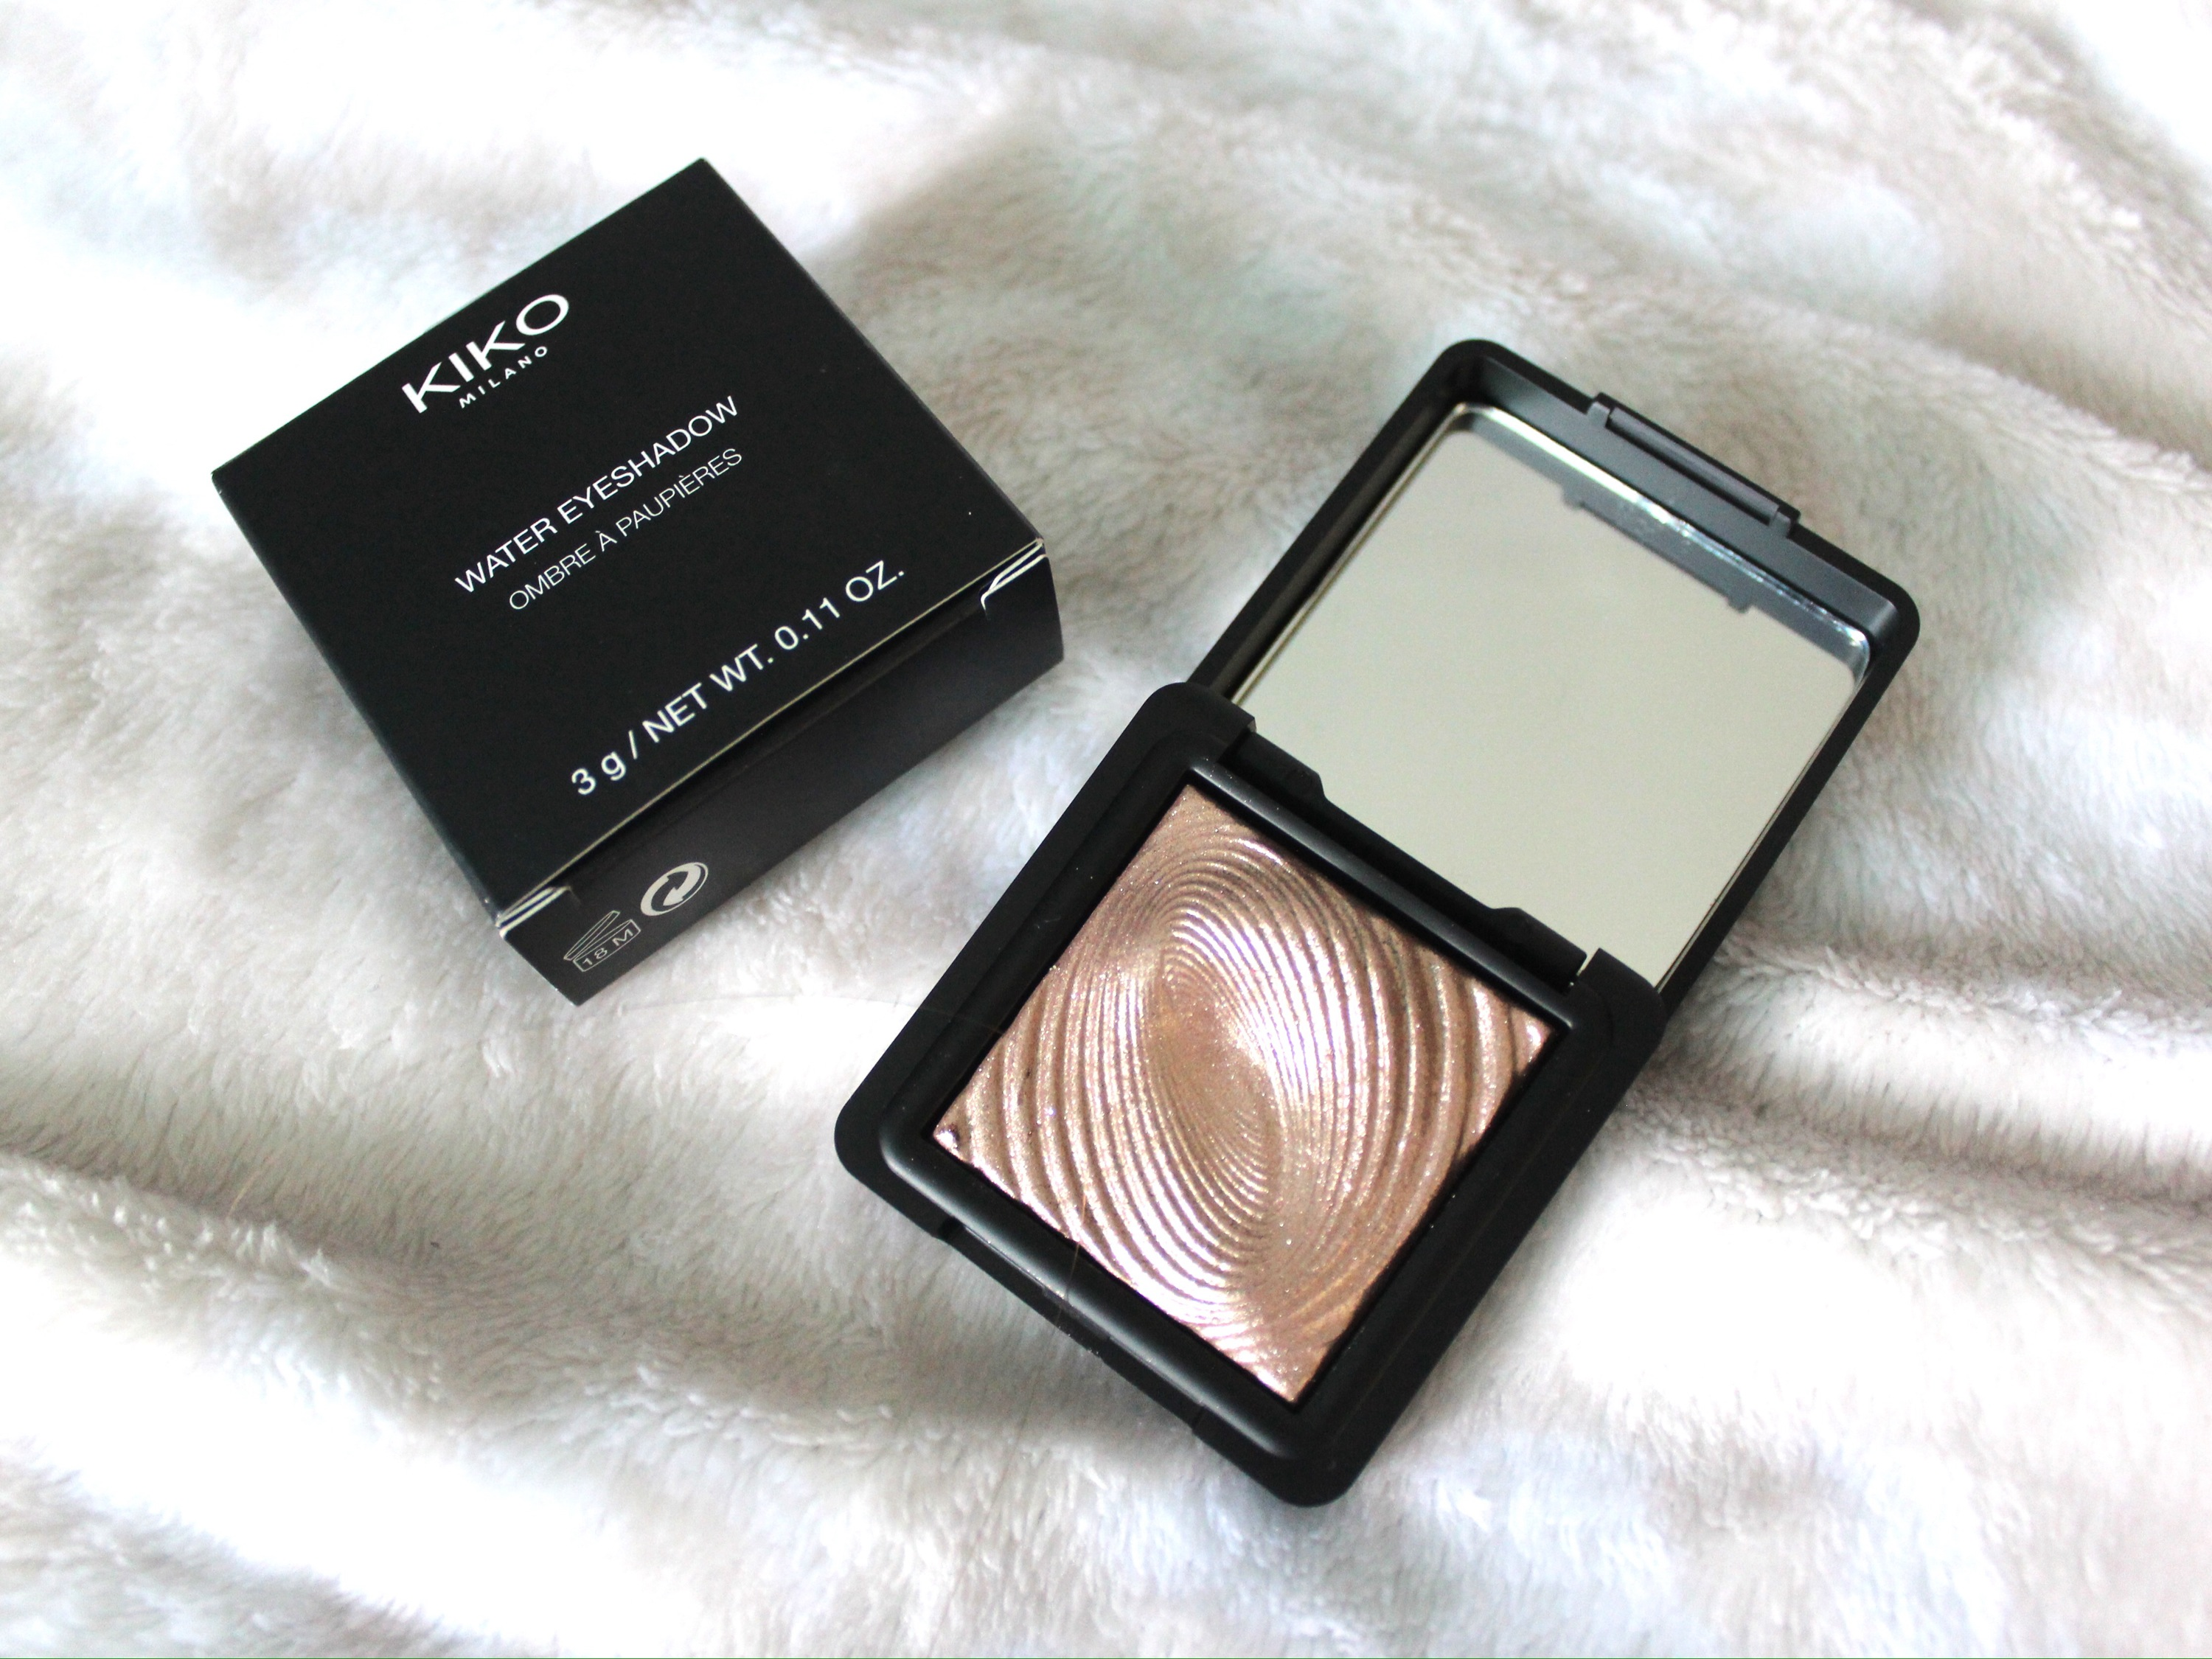 KIKO water eyeshadow in a gold shade